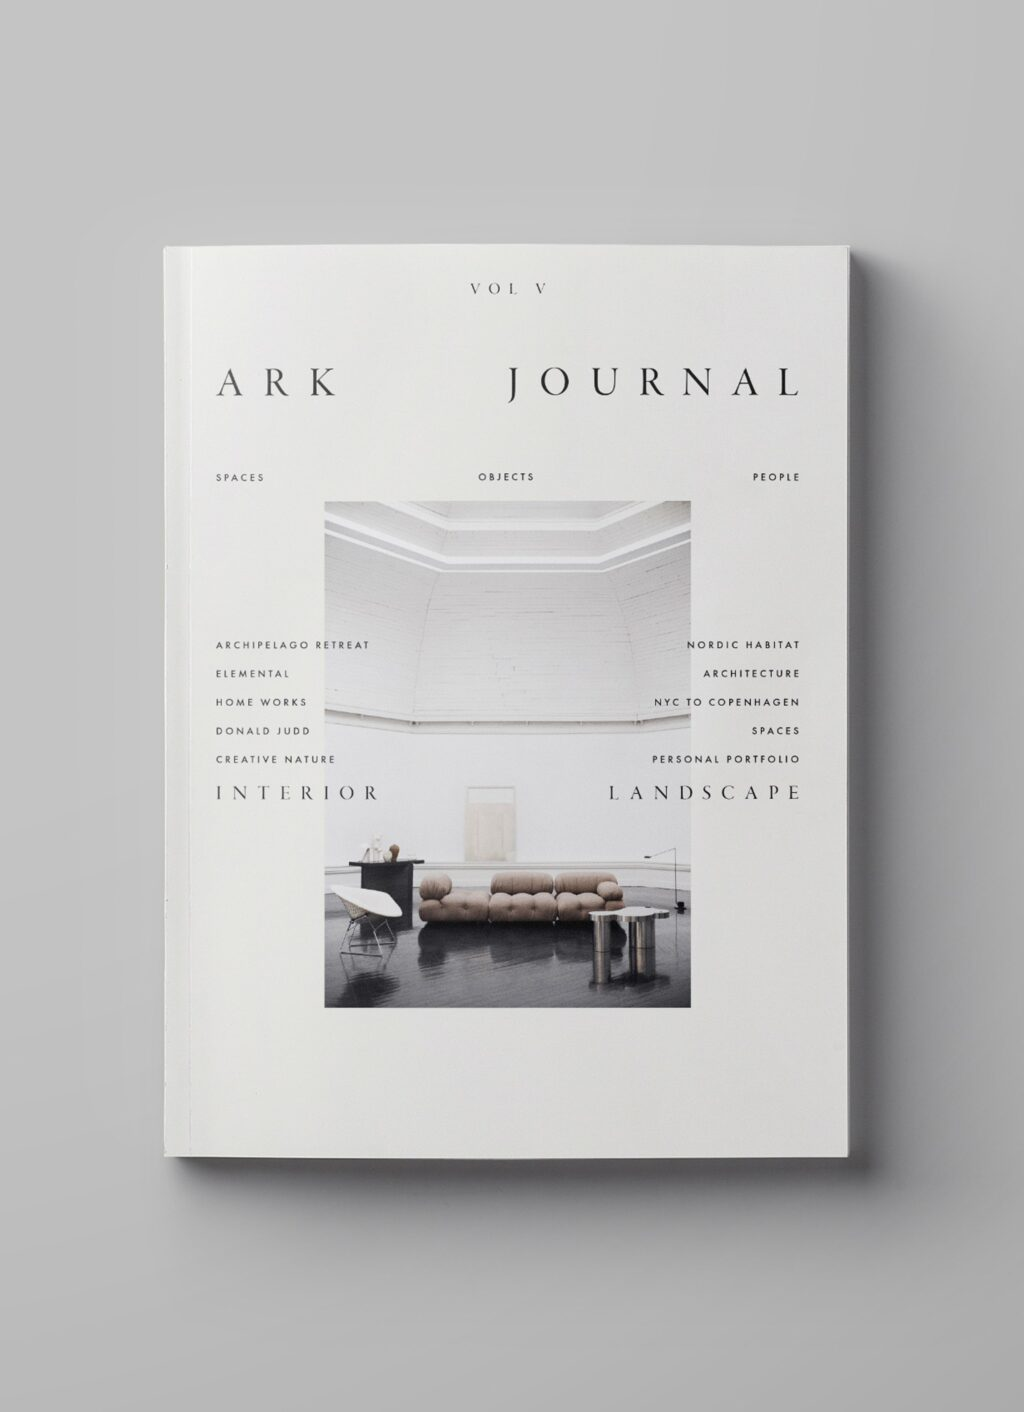 Ark Journal - Spring-Summer 2021 - Volume V